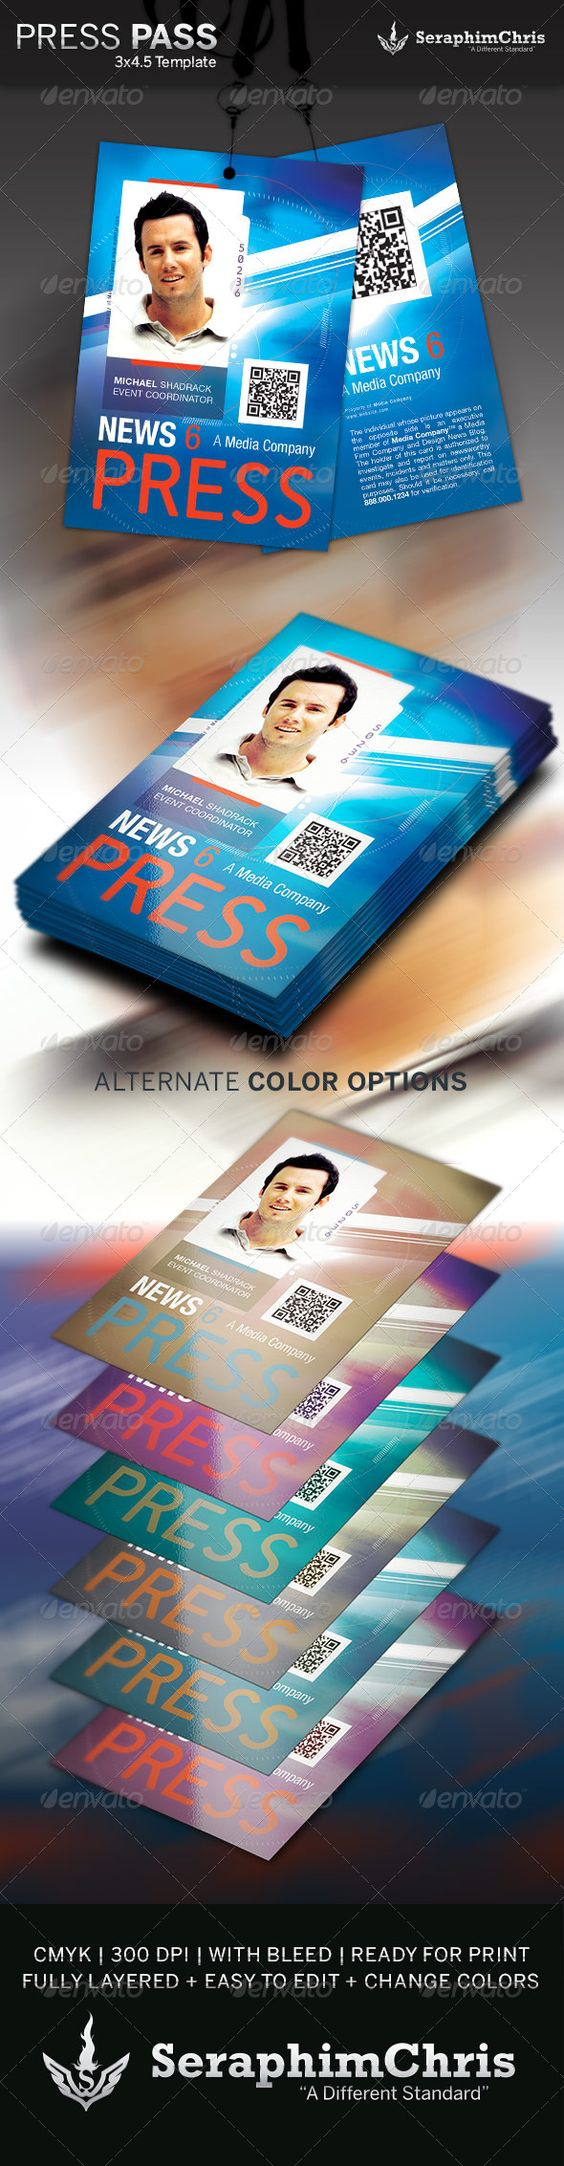 Press pass template 3 colors photoshop and presentation for Media press pass template